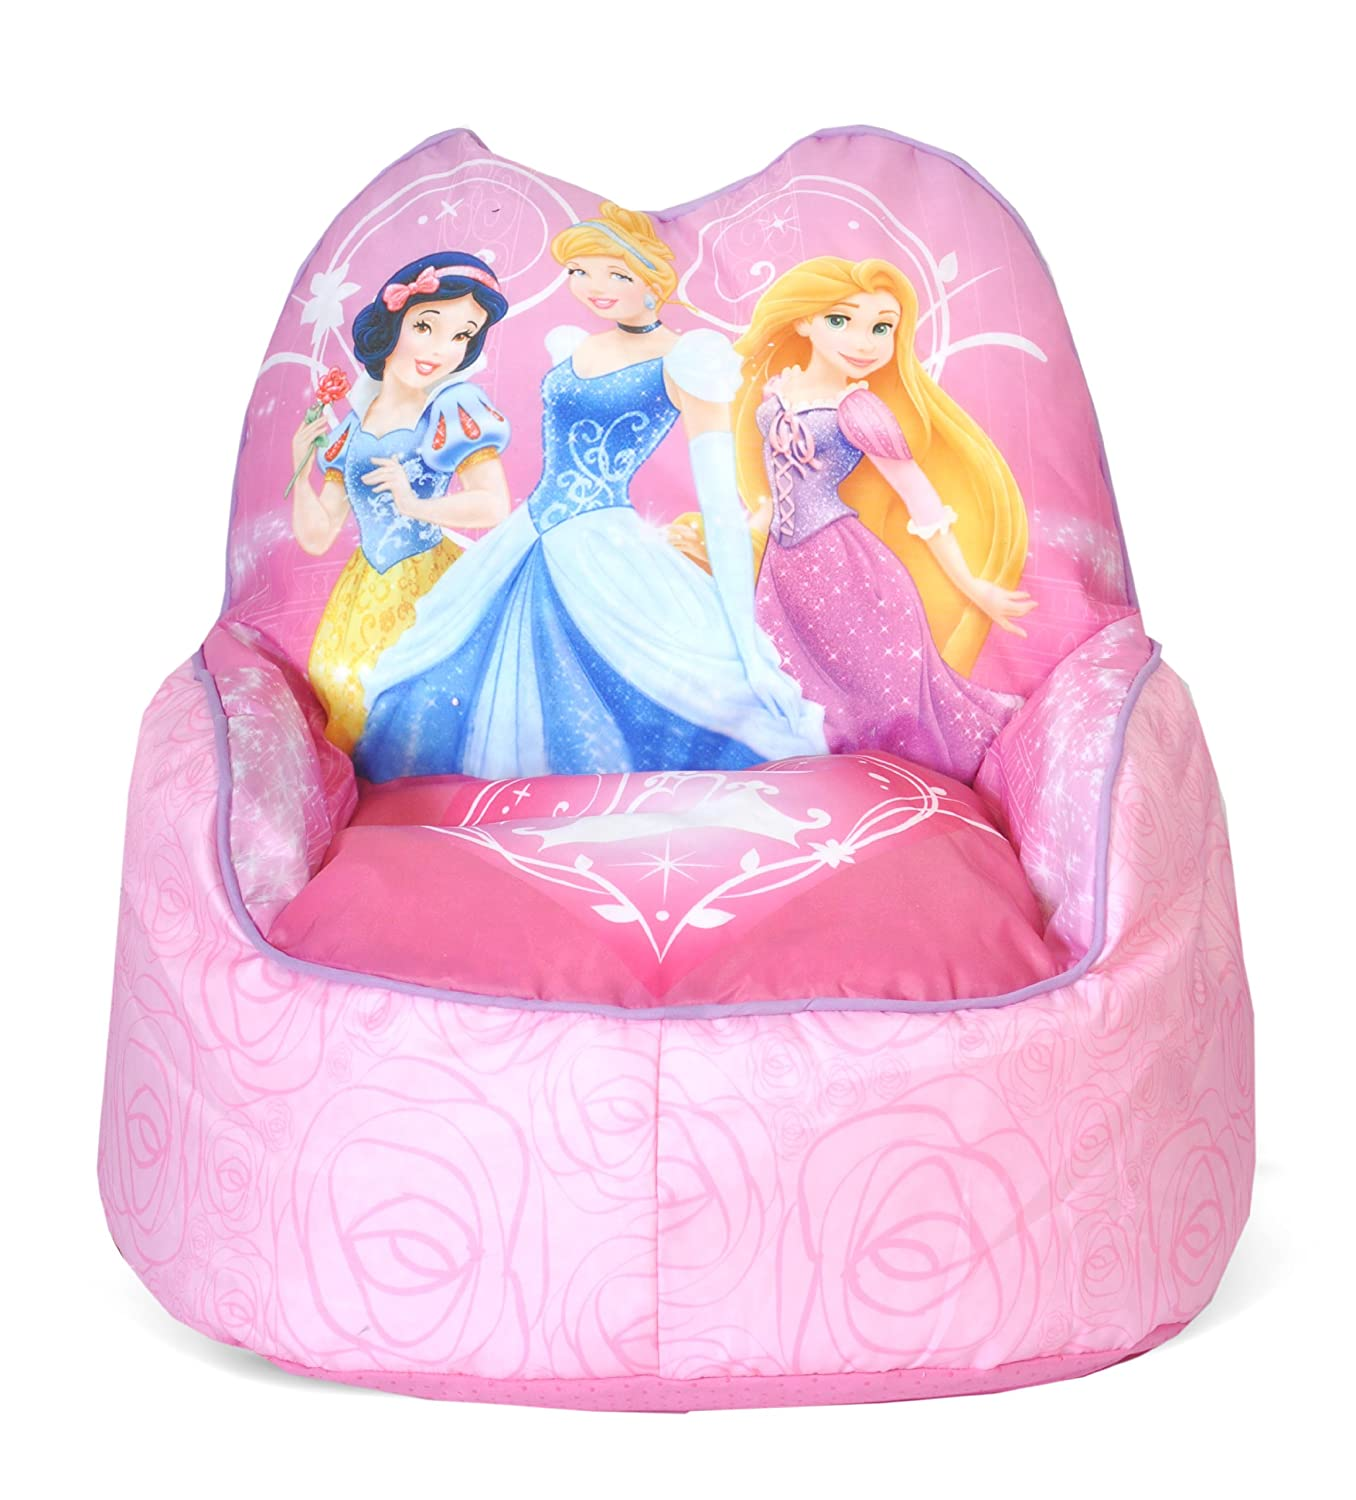 Disney Princess Toddler Bean Bag Sofa Chair